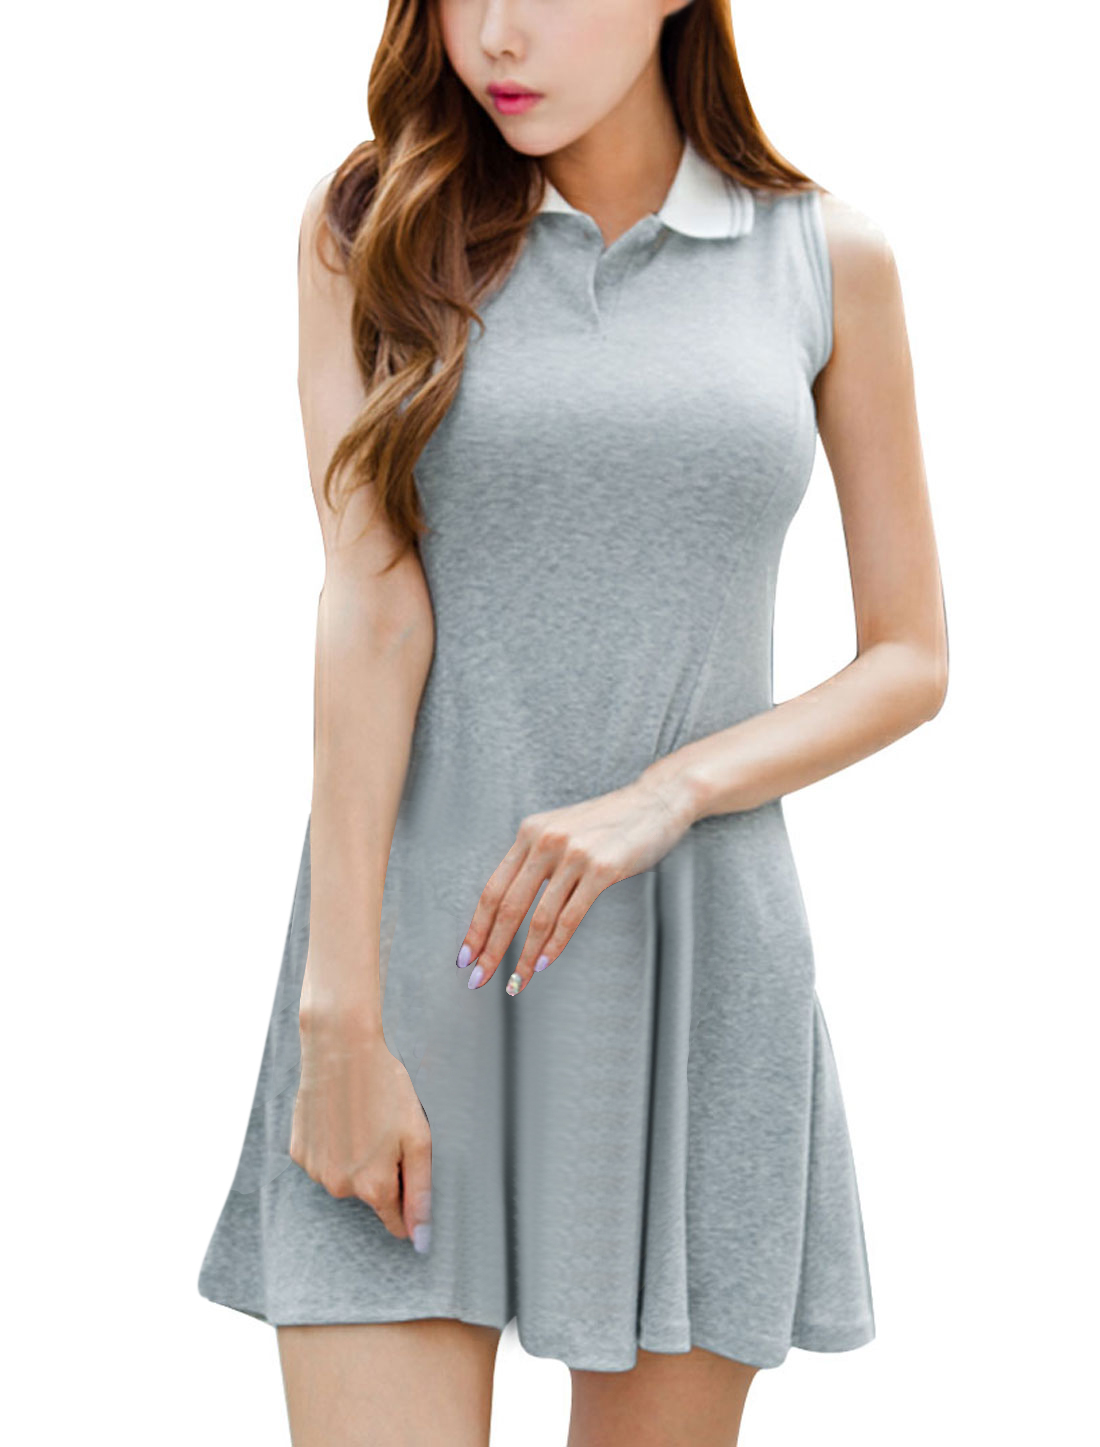 Women Convertible Collar Pullover Ribbing Dress Light Gray XS